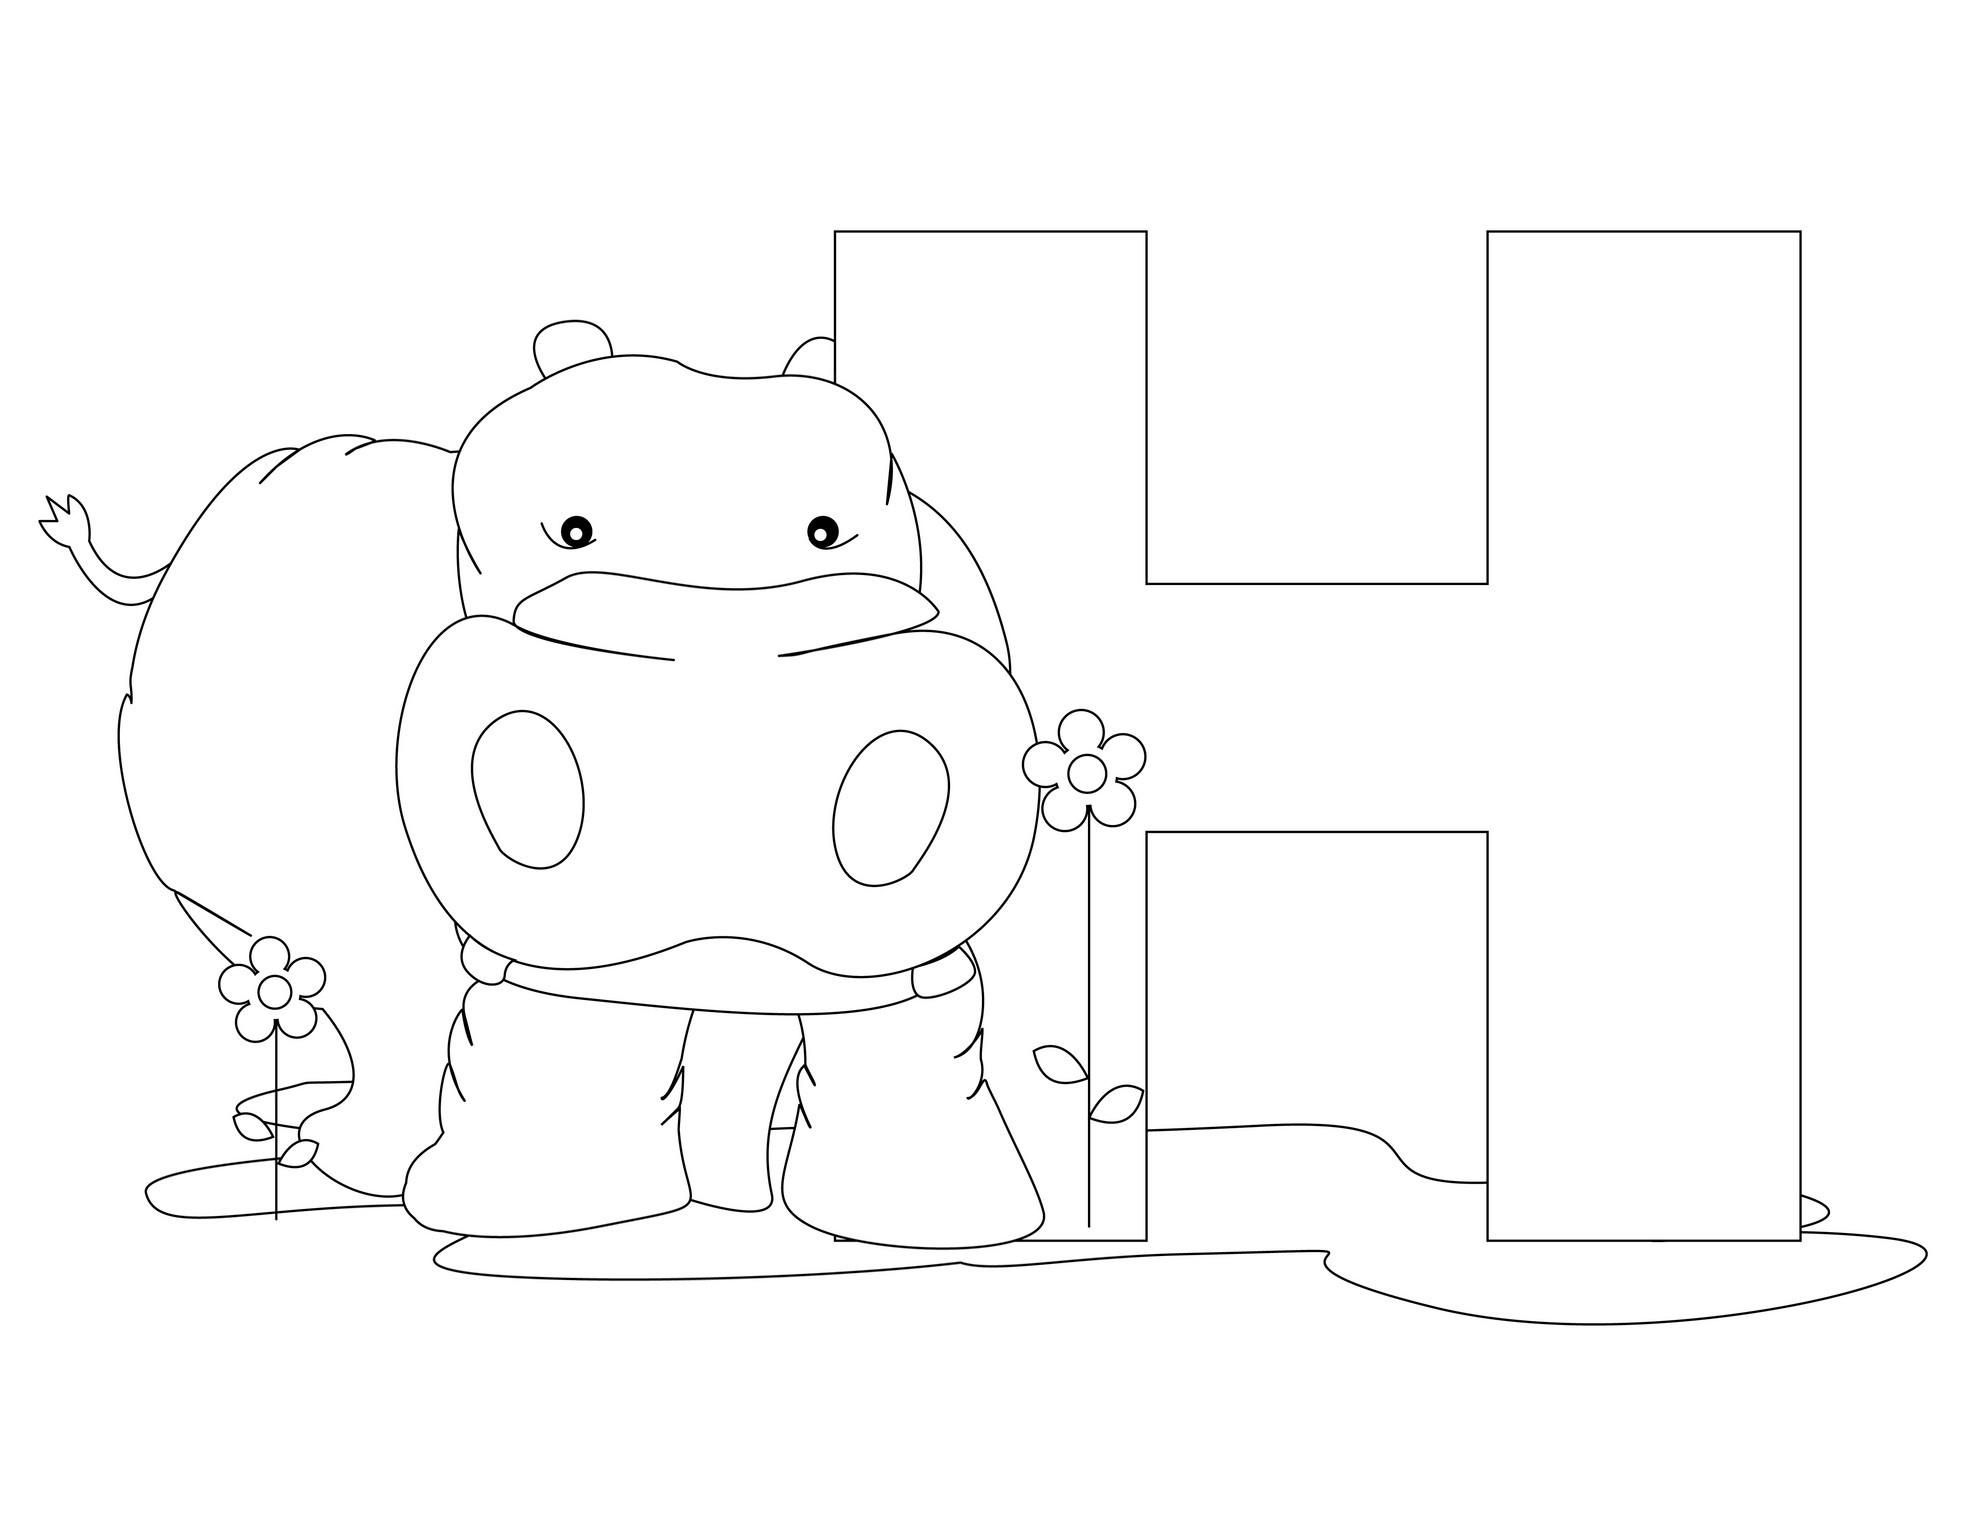 h coloring pages for kids letter h coloring pages to download and print for free h kids pages coloring for